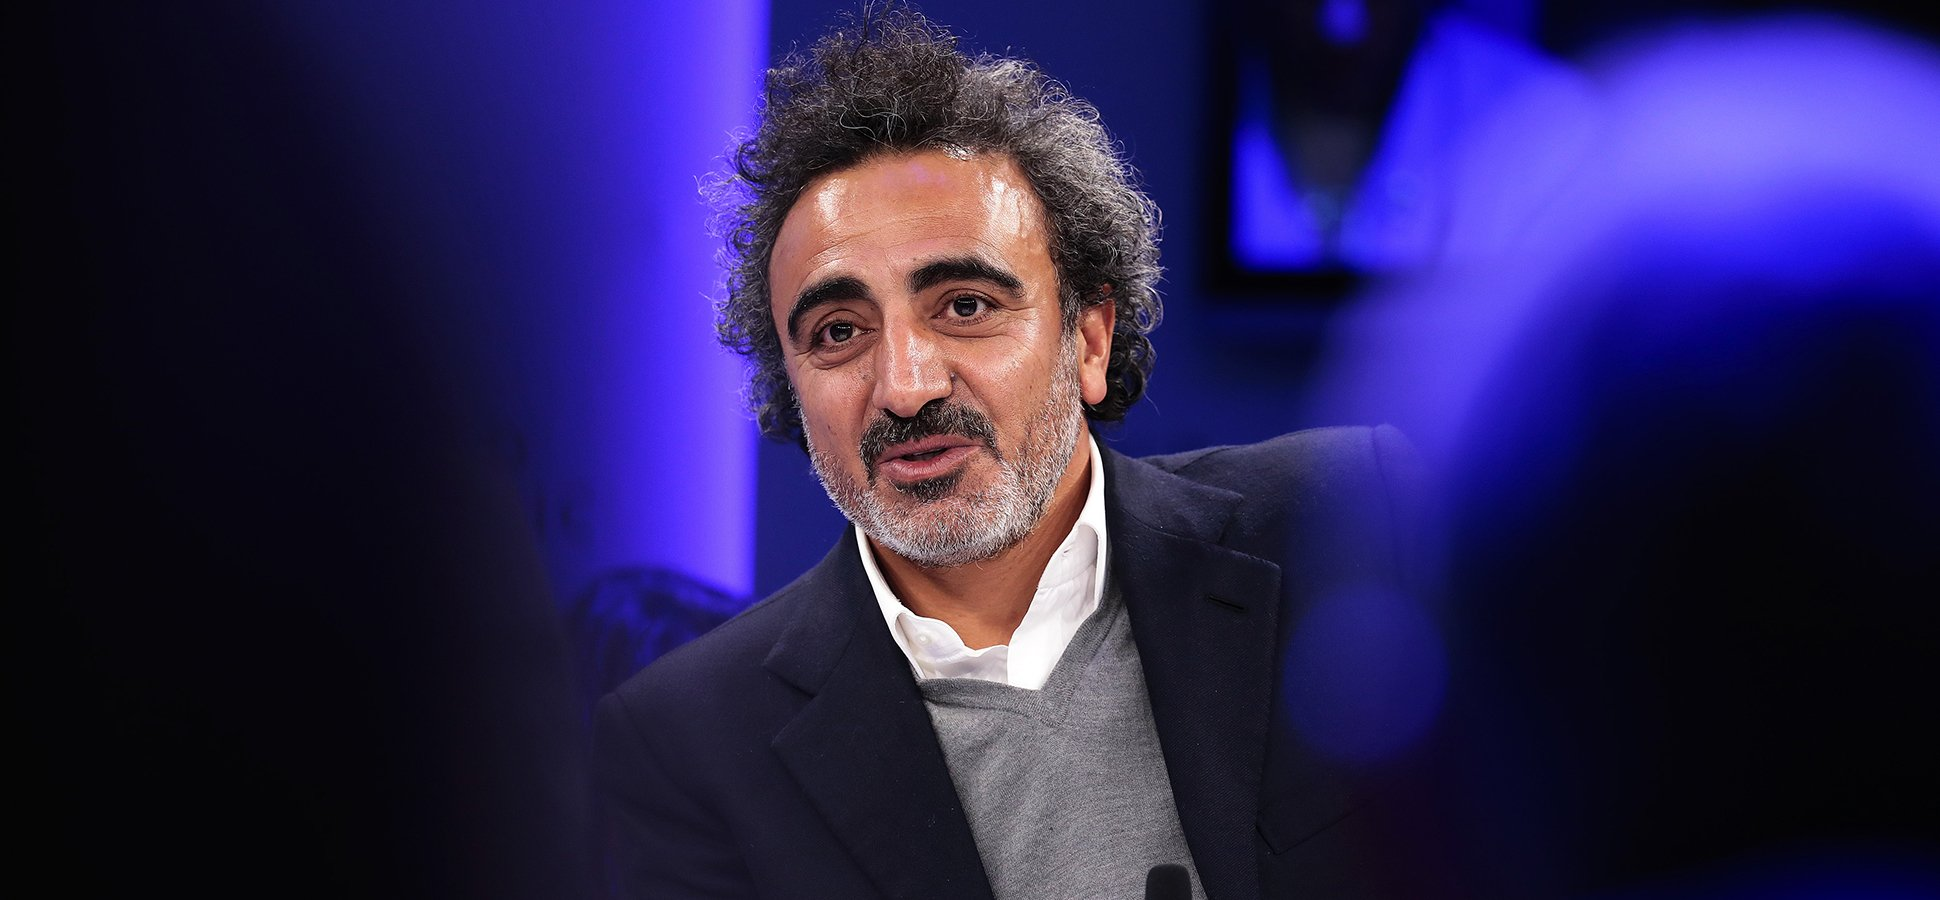 Chobani Founder: 'Almost 30 Percent of Our Workforce Is Refugees. This Is the American Way.'